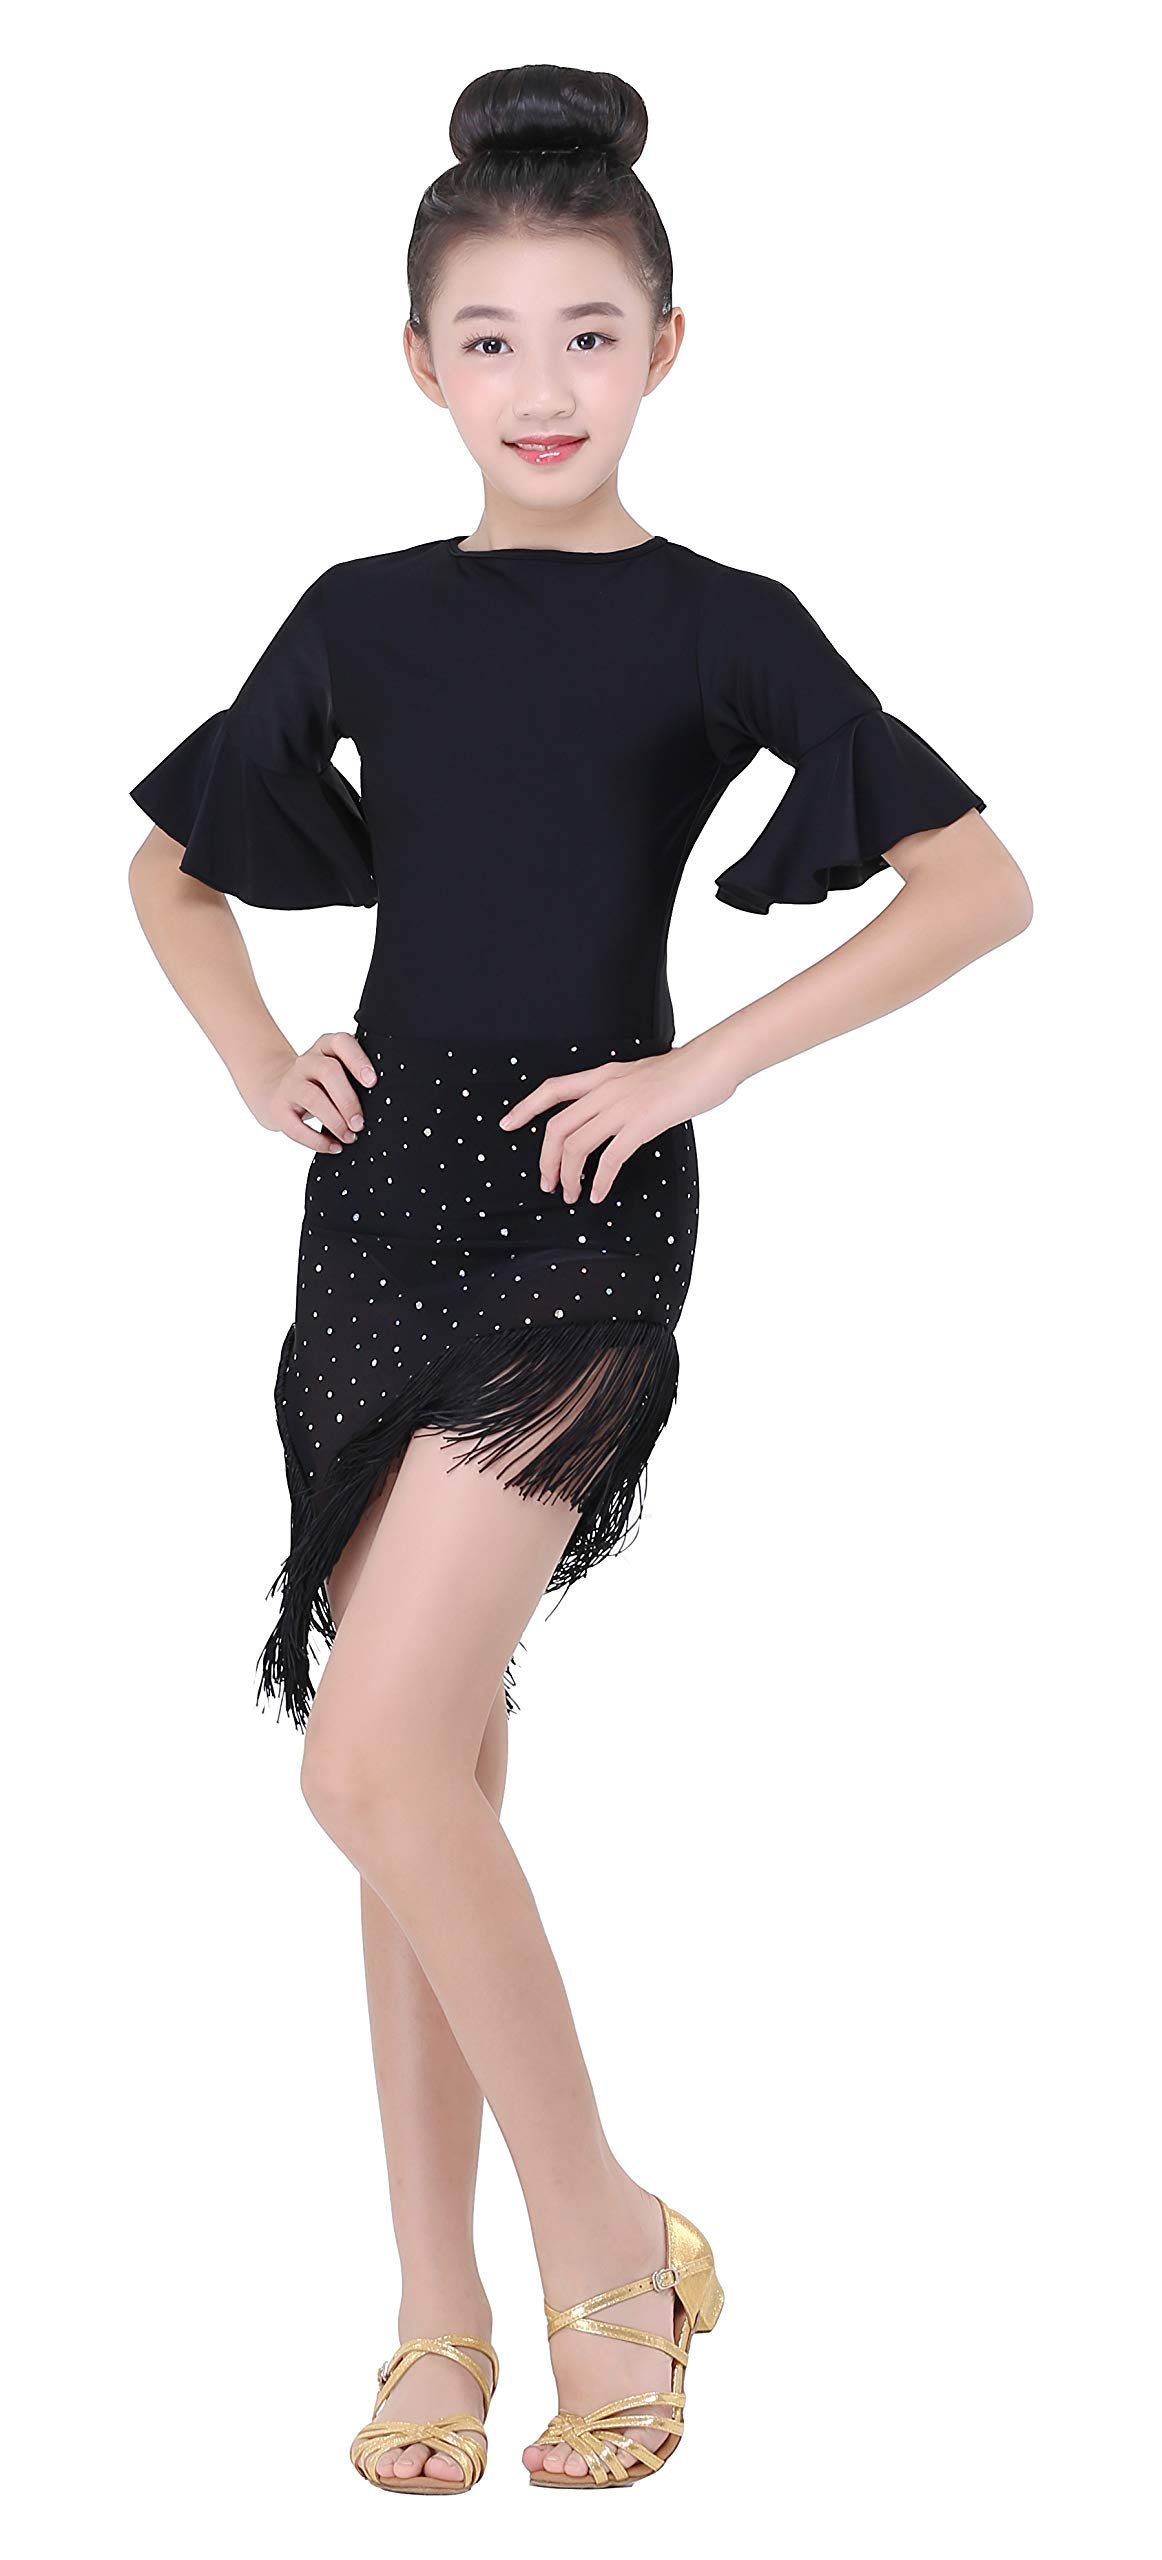 Girls' Shiny Dot Sequin Latin Salsa Smooth Practice Tassel Dance Skirt (Black, M) by JEZISYMA